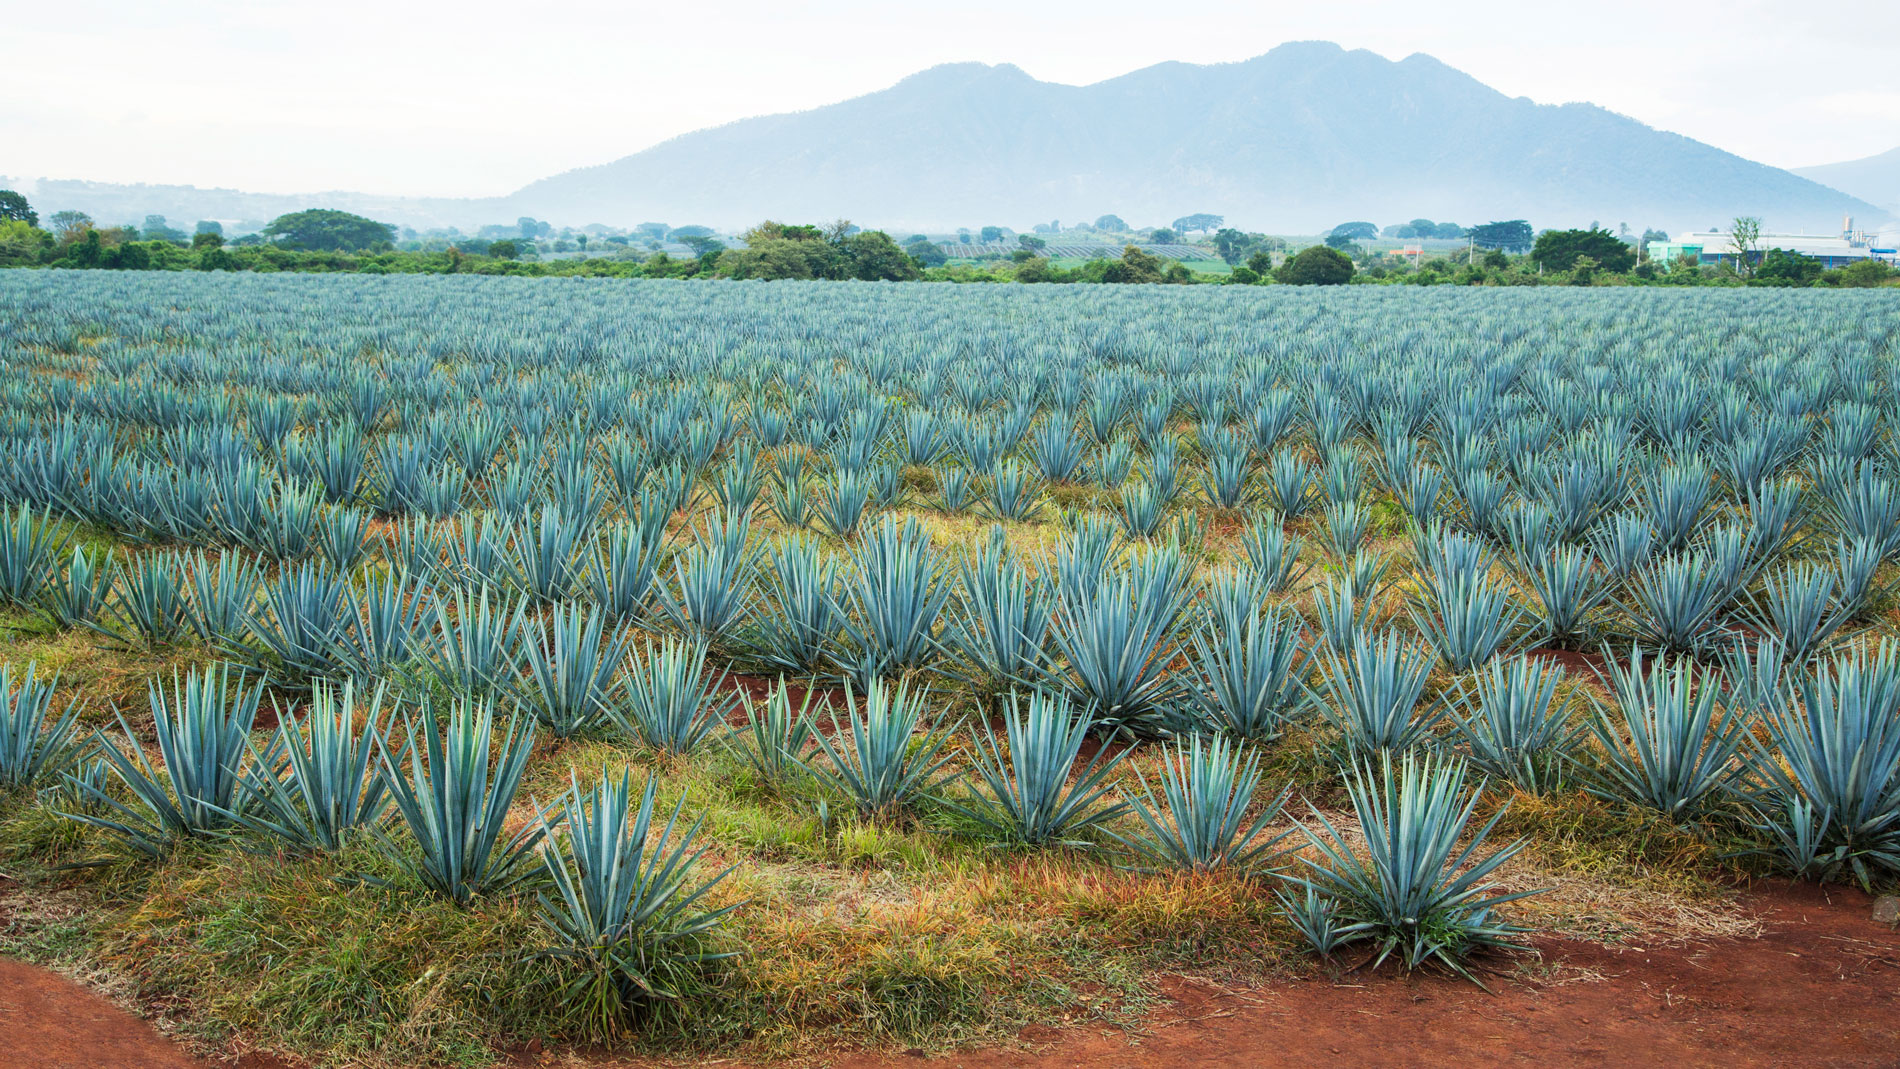 Mexico's High-Tech Tequila Police Use Drones to Fight Agave Fraud